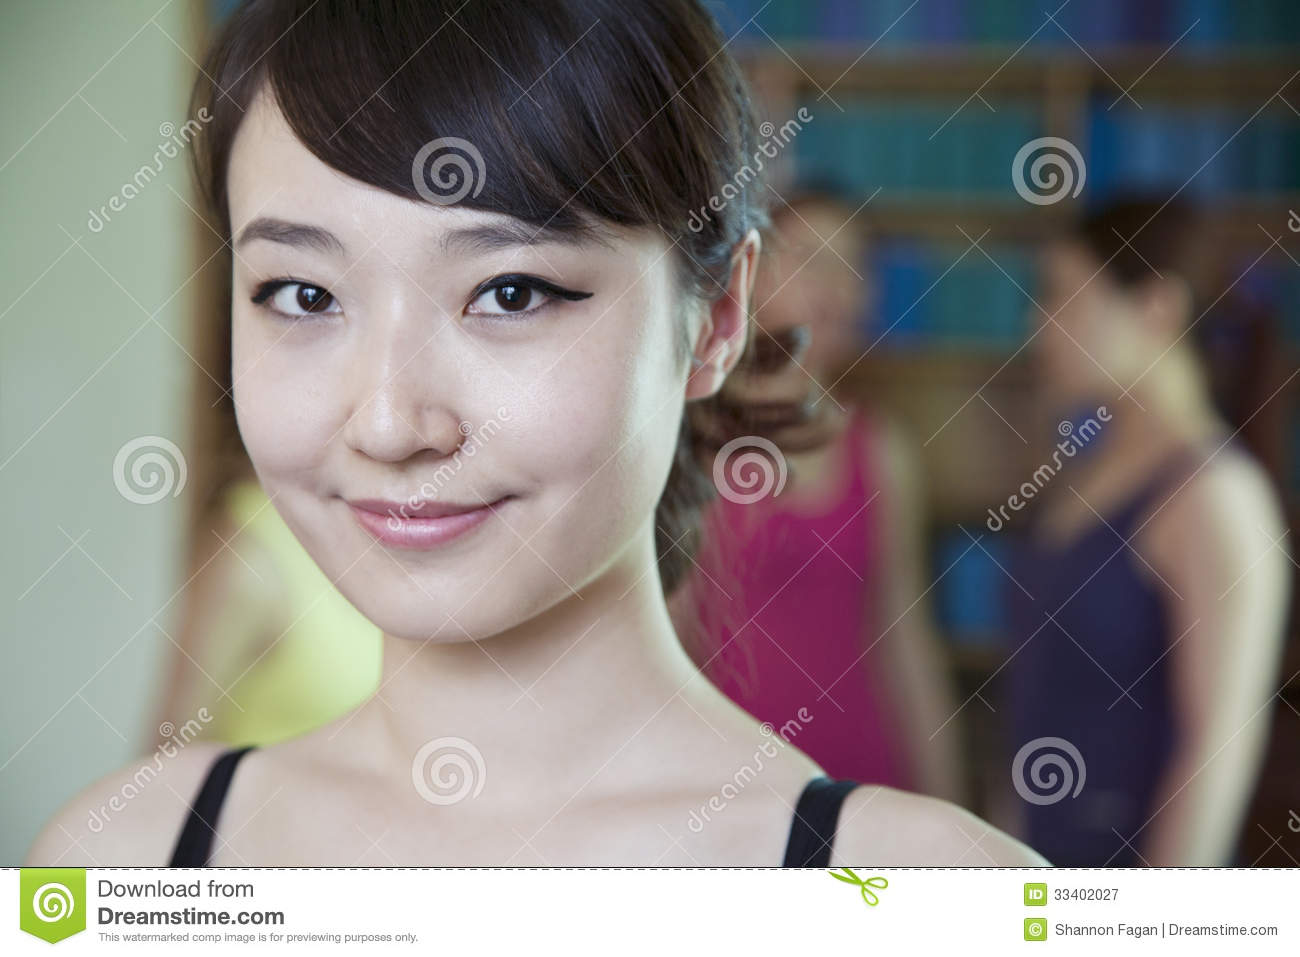 Portrait of smiling young woman in a yoga studio - portrait-smiling-young-woman-yoga-studio-women-33402027